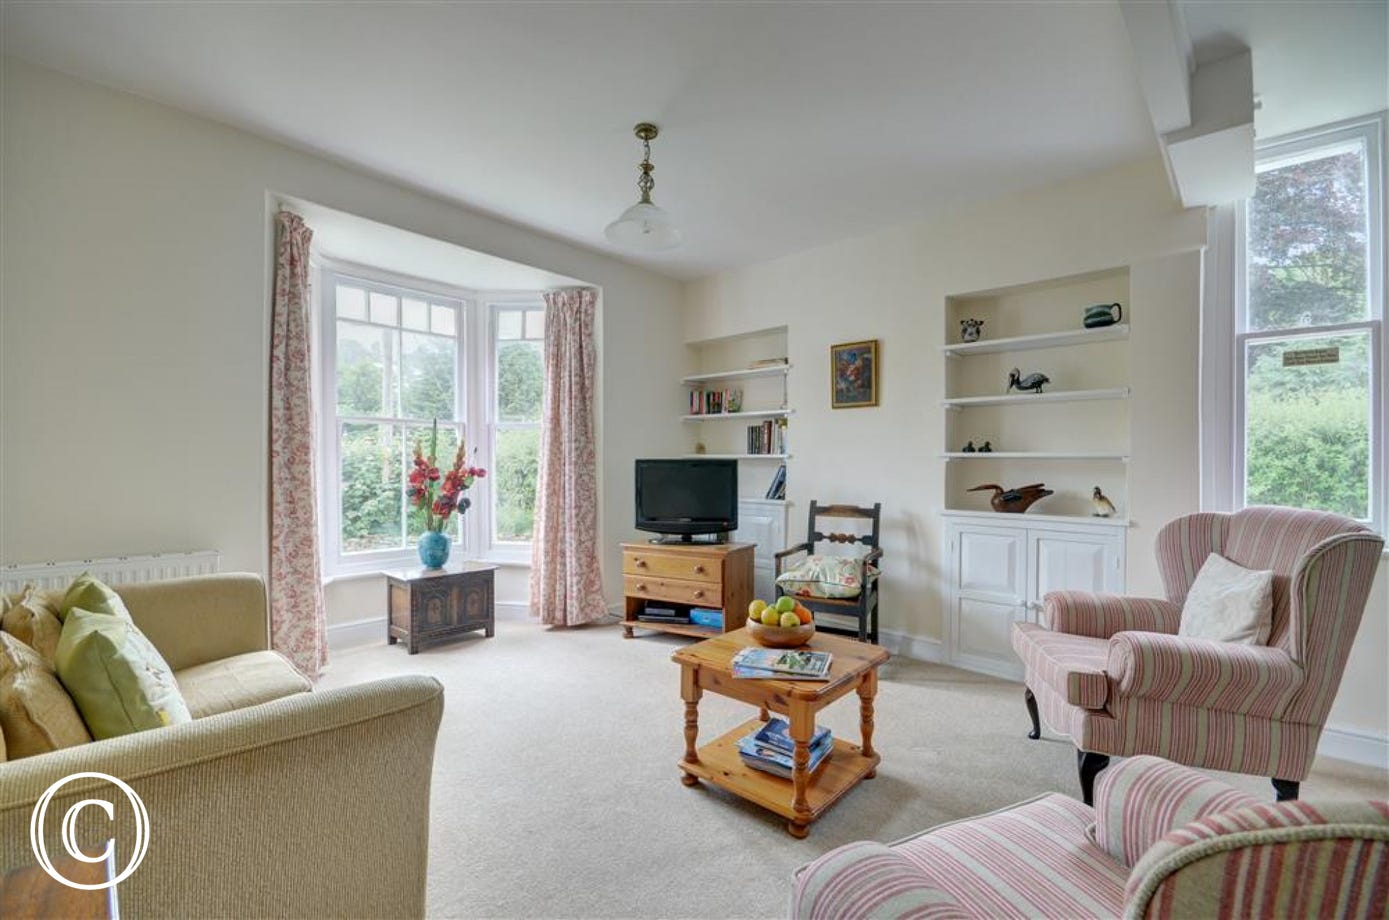 Generous sized sitting room with bay window